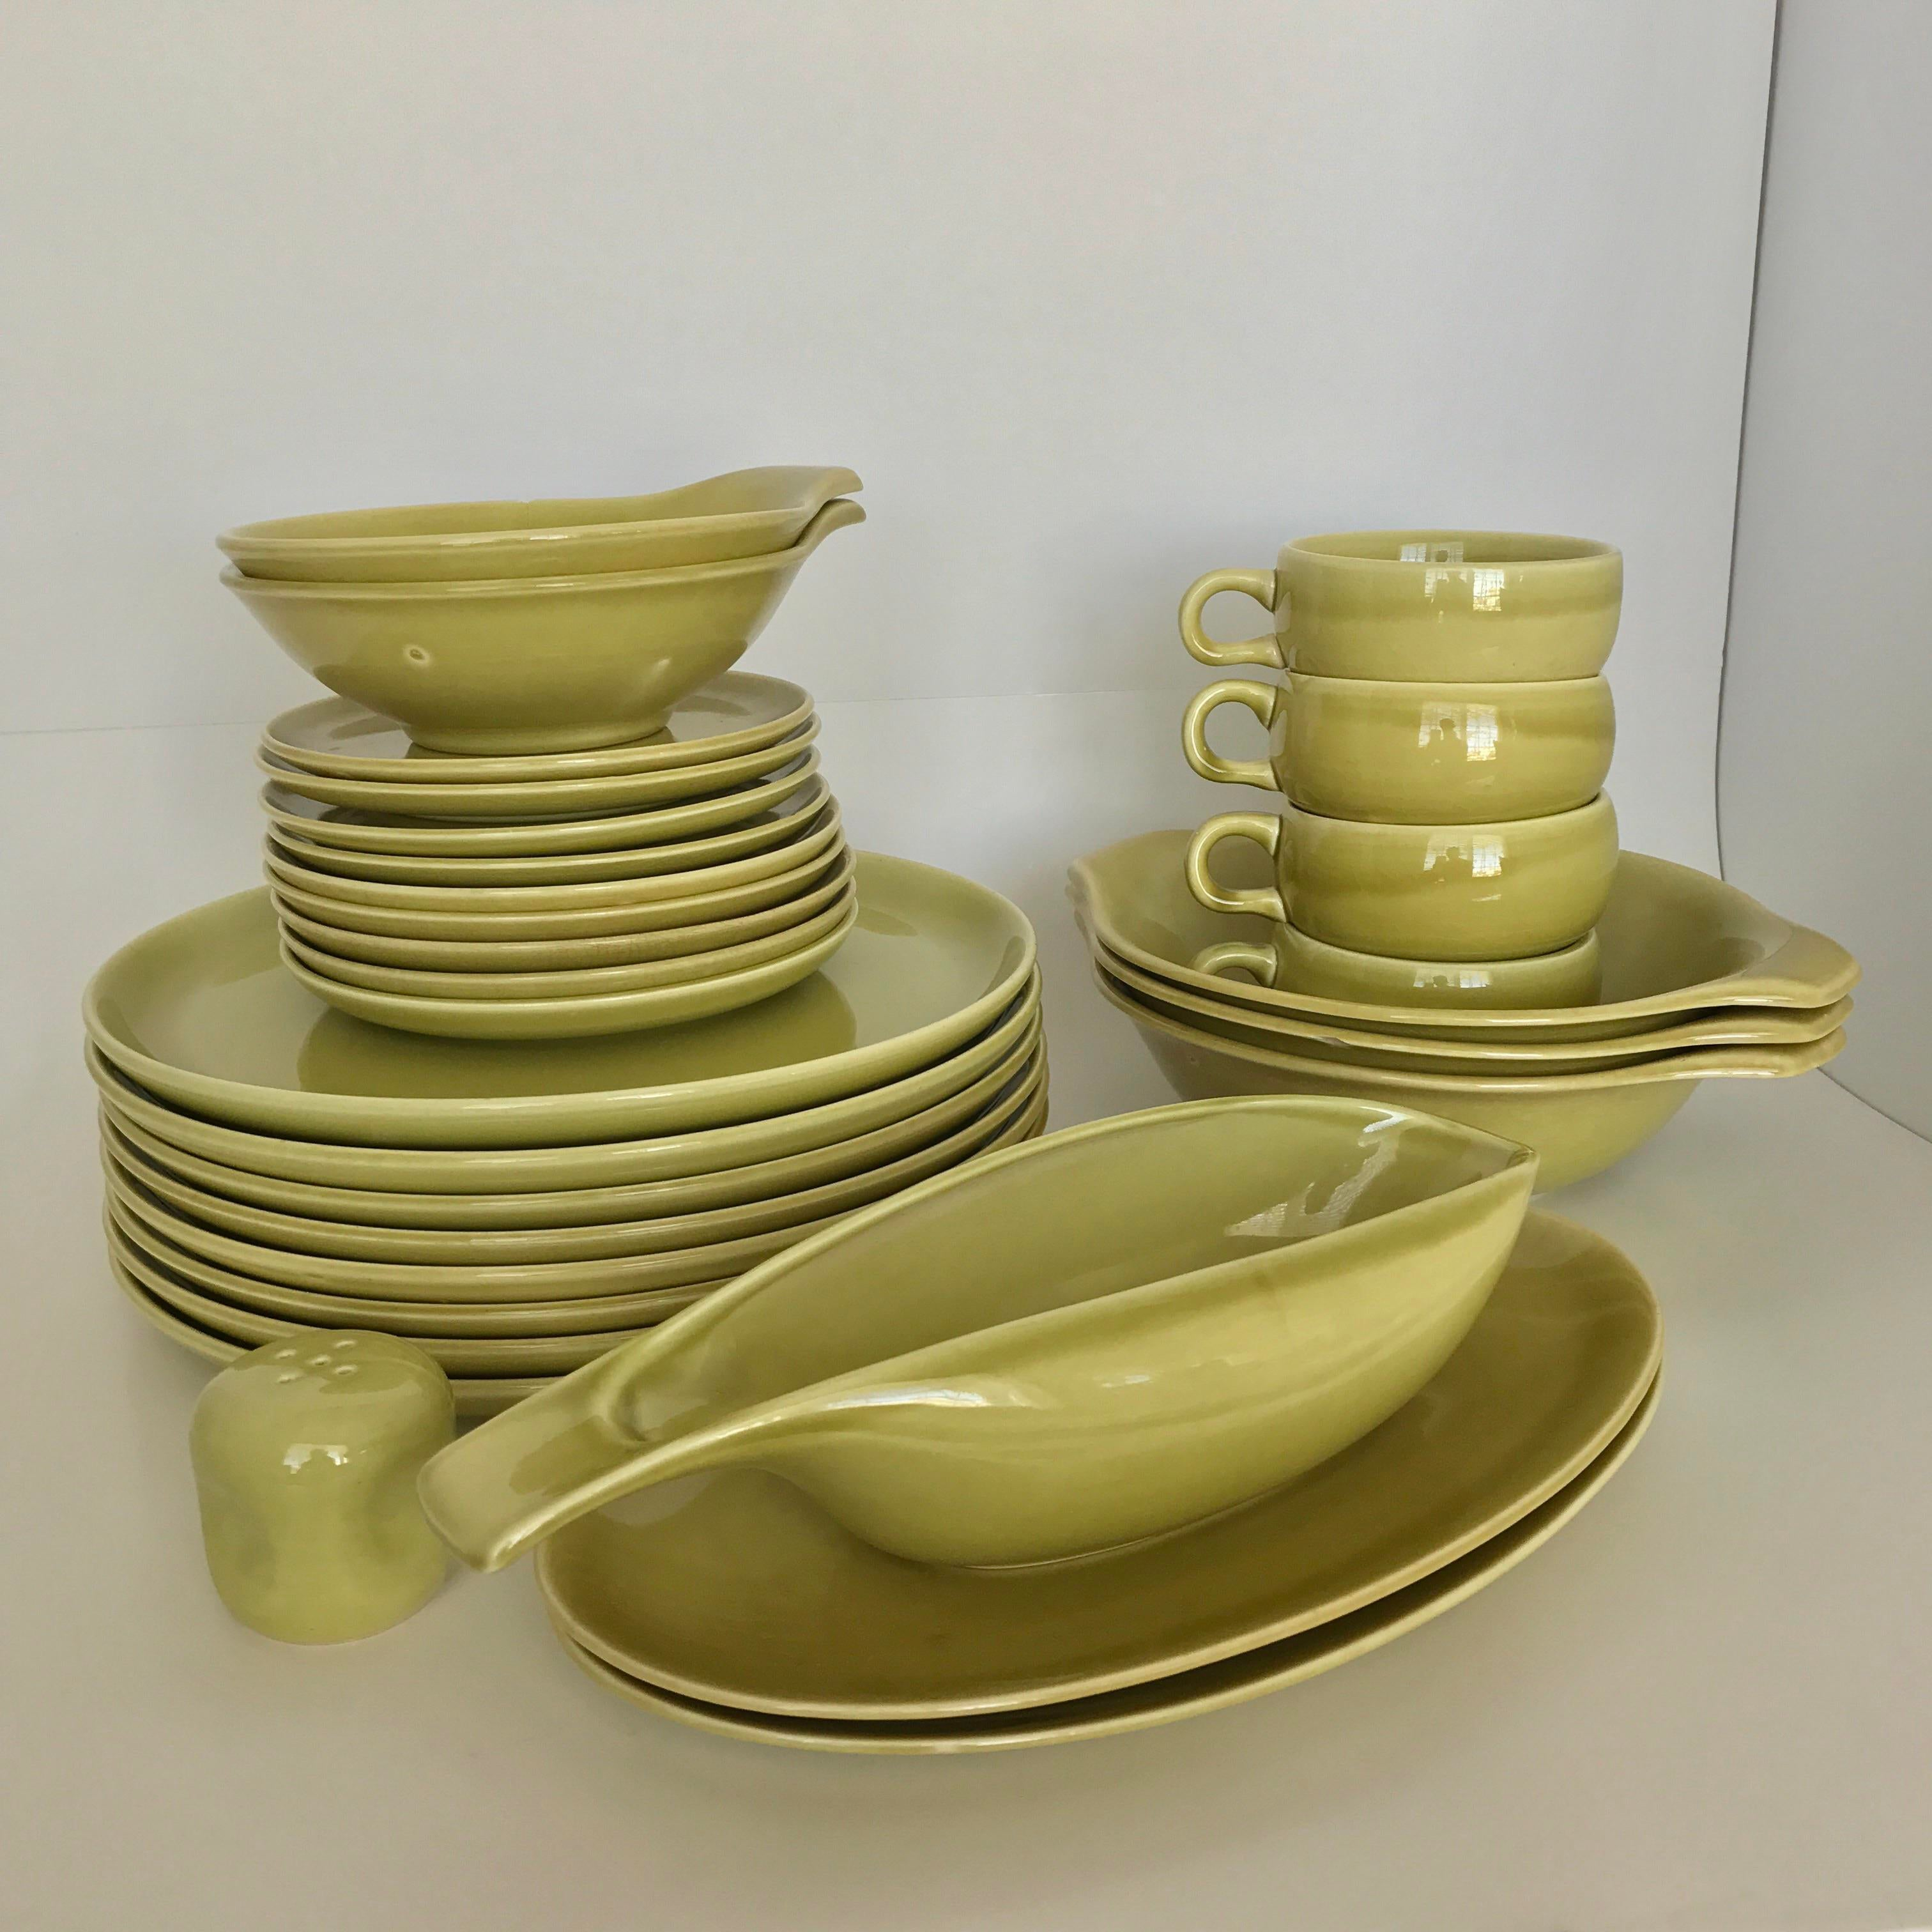 Russel Wright Mid-Century Chartreuse Dinnerware - 30 Pieces - Image 2 of 11 & Russel Wright Mid-Century Chartreuse Dinnerware - 30 Pieces | Chairish